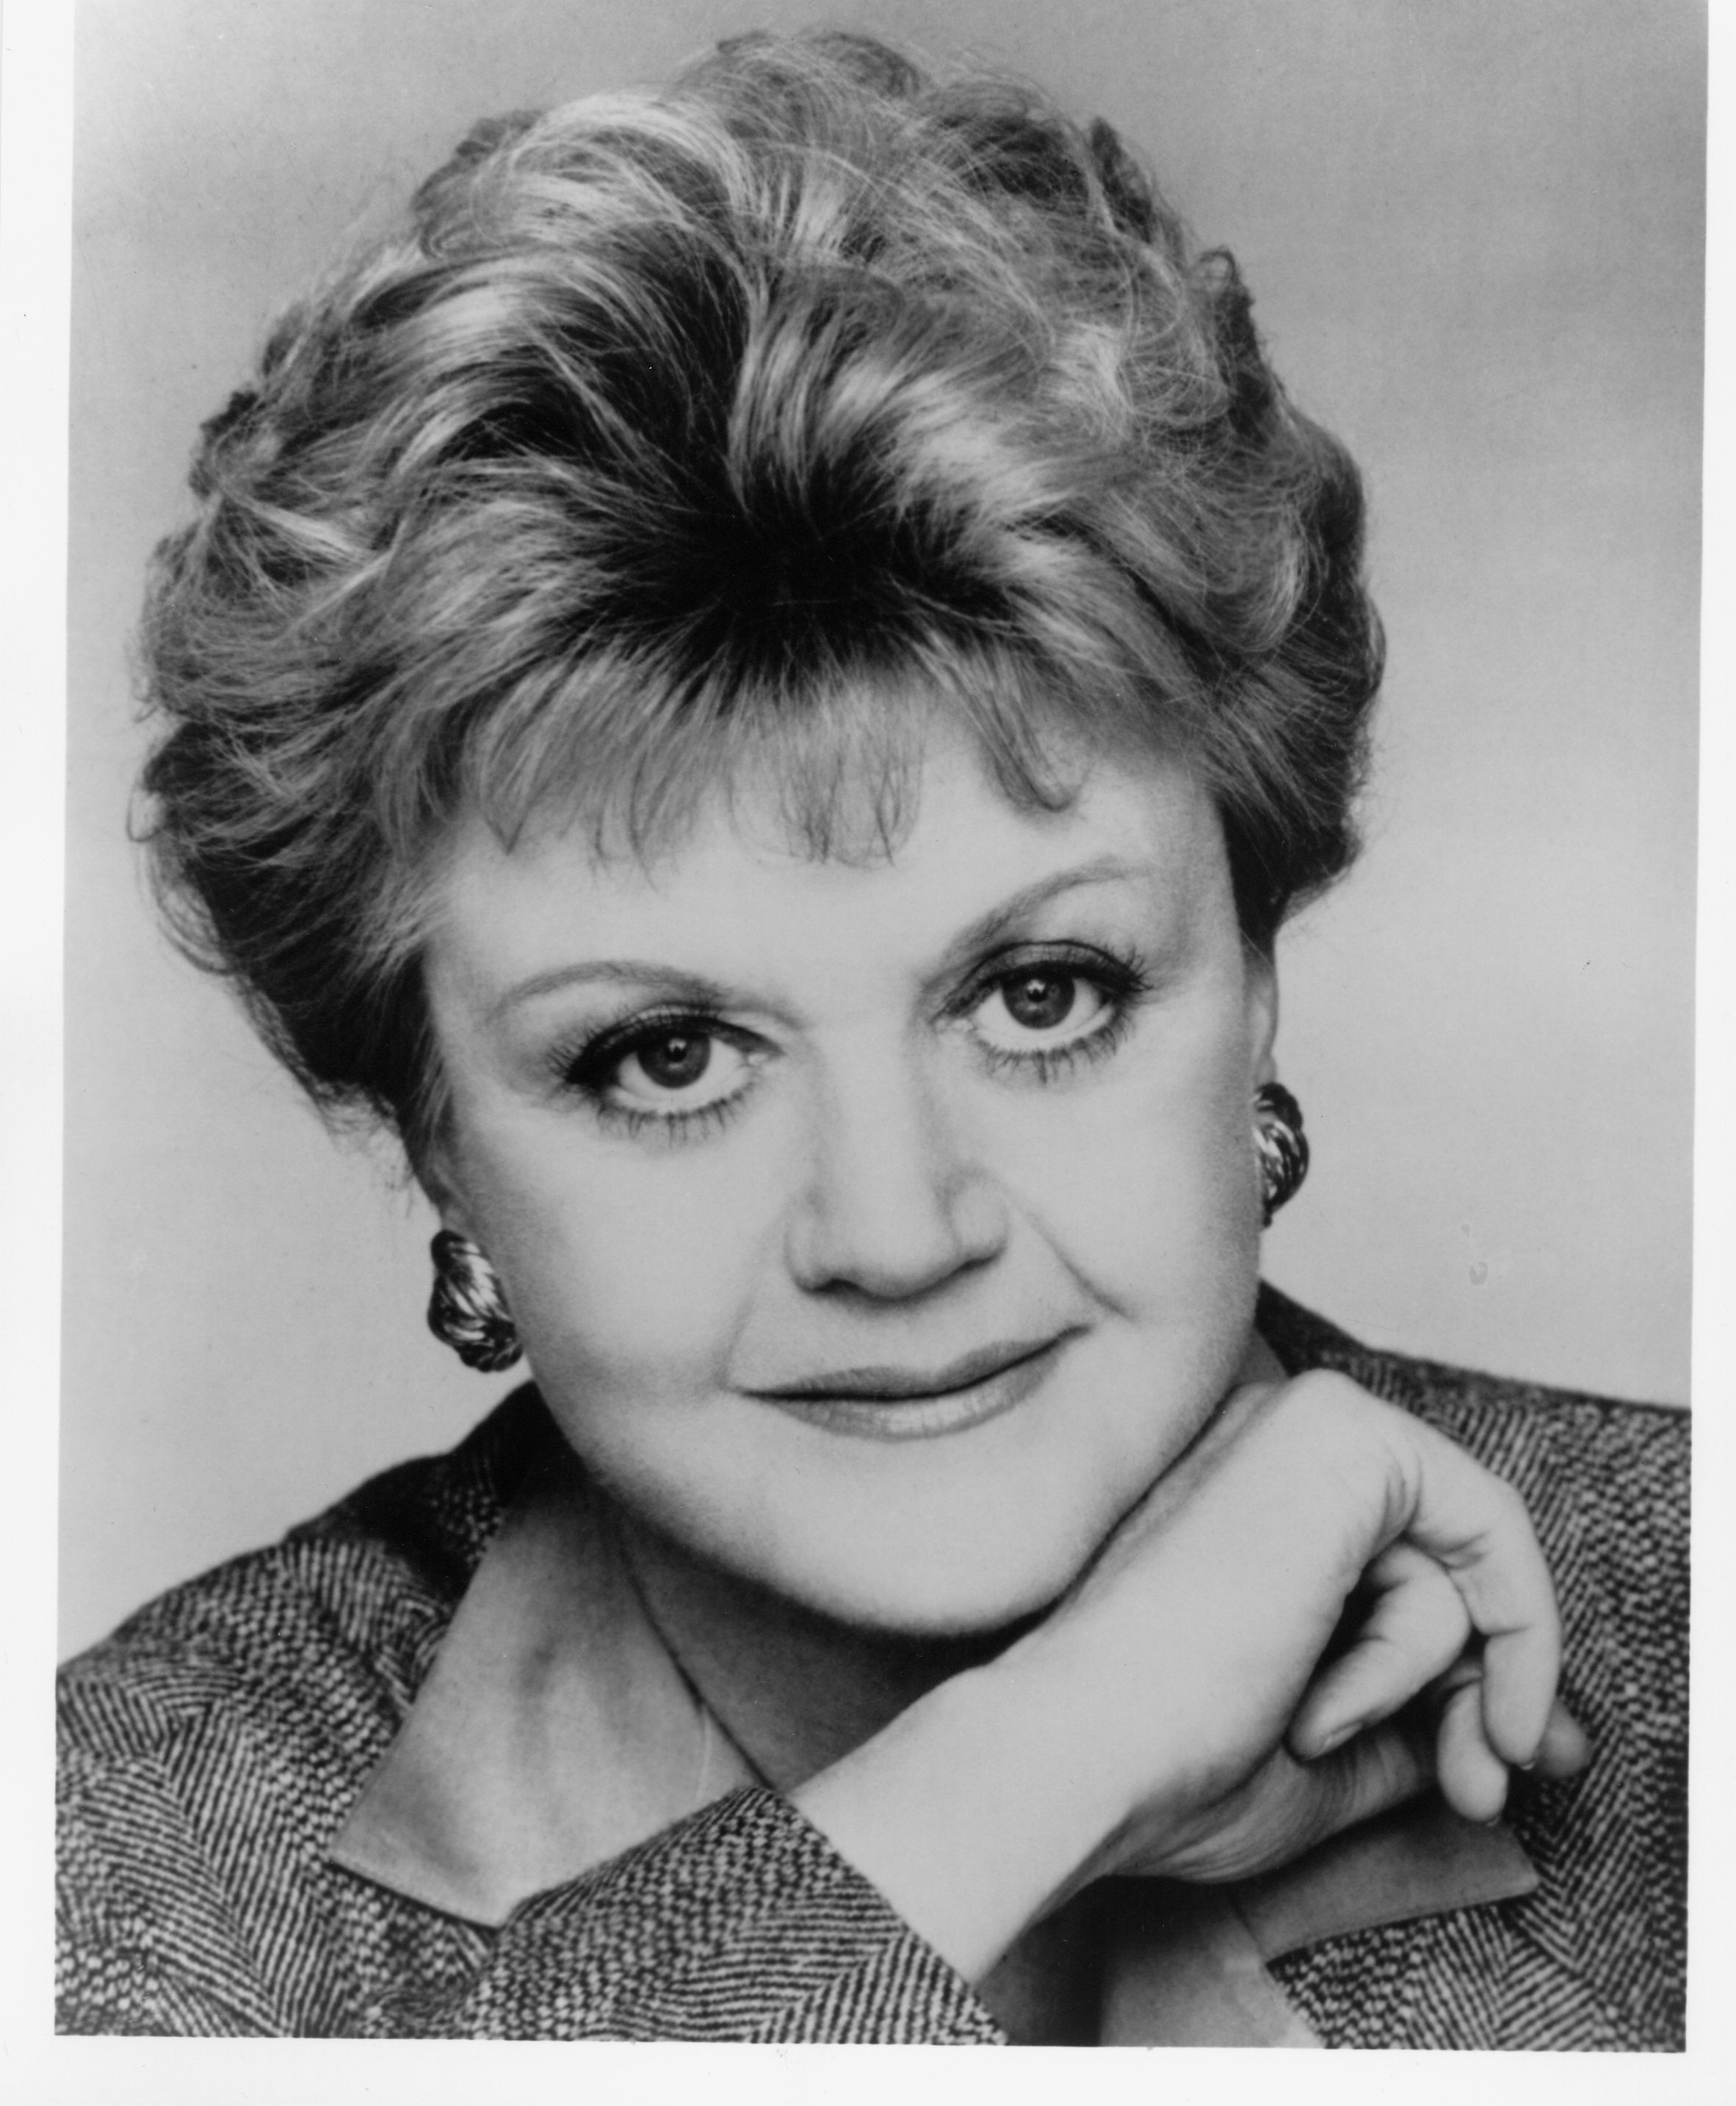 Angela Lansbury (born 1925 (naturalized American citizen) Angela Lansbury (born 1925 (naturalized American citizen) new pictures